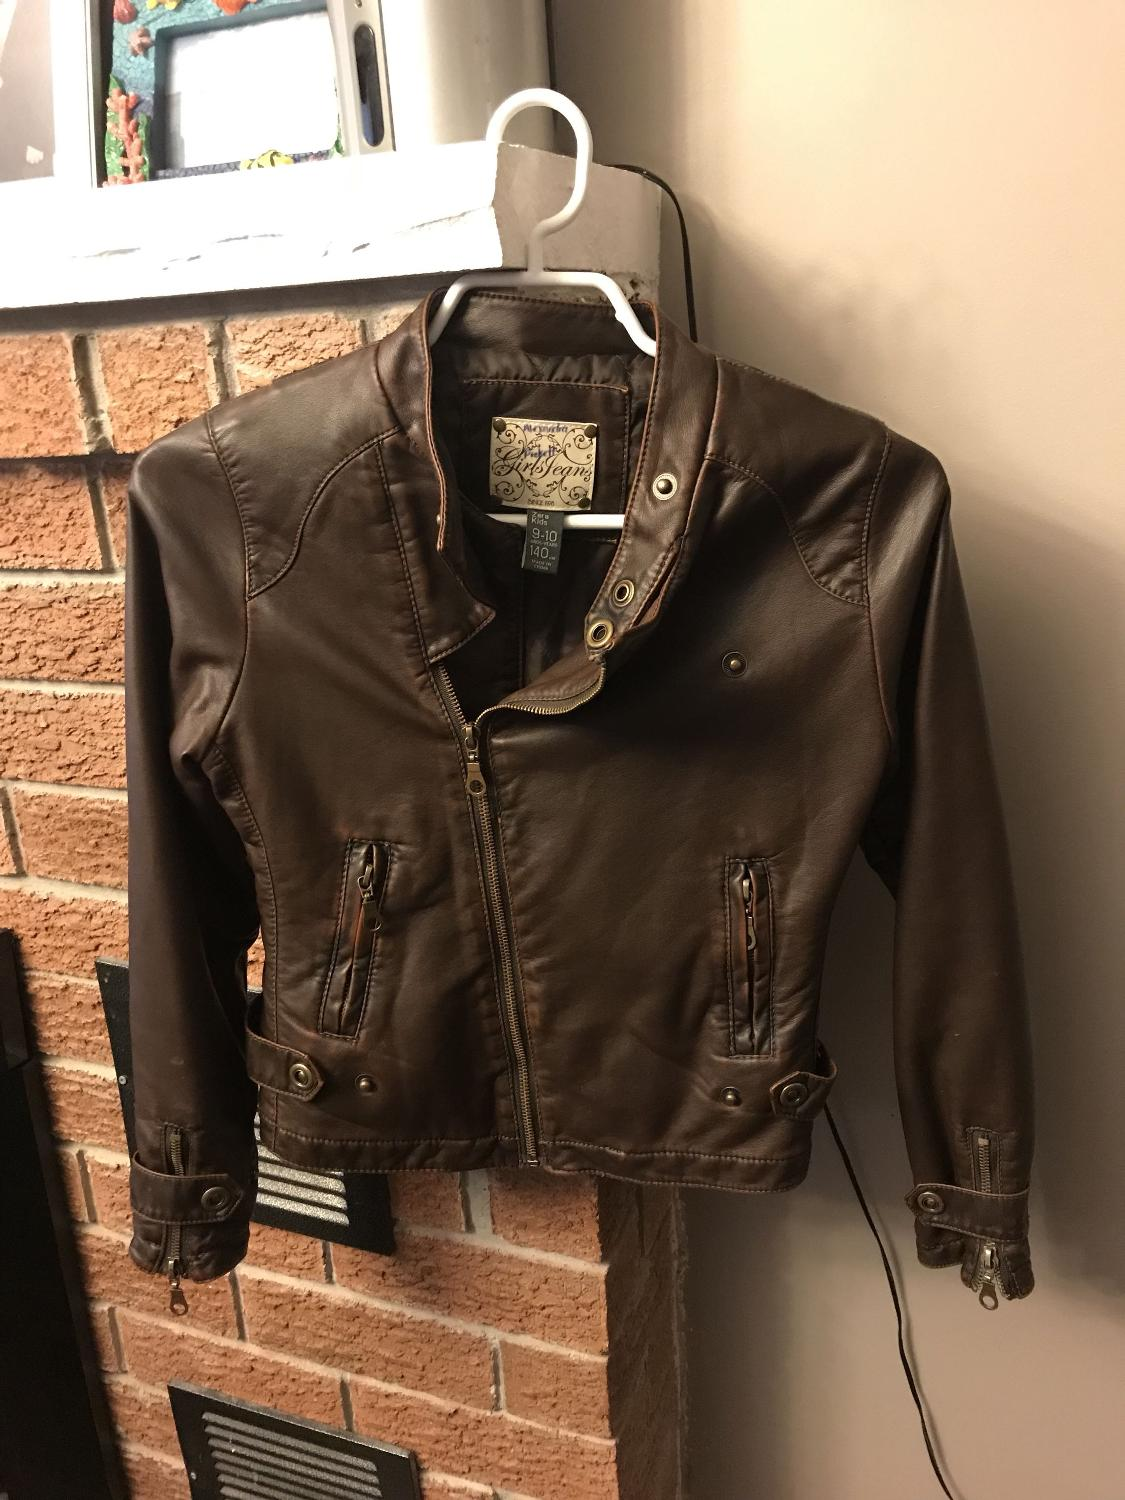 e0e81f6a Find more Zara Girls' Faux Leather Jacket - Size 9/10 for sale at up ...